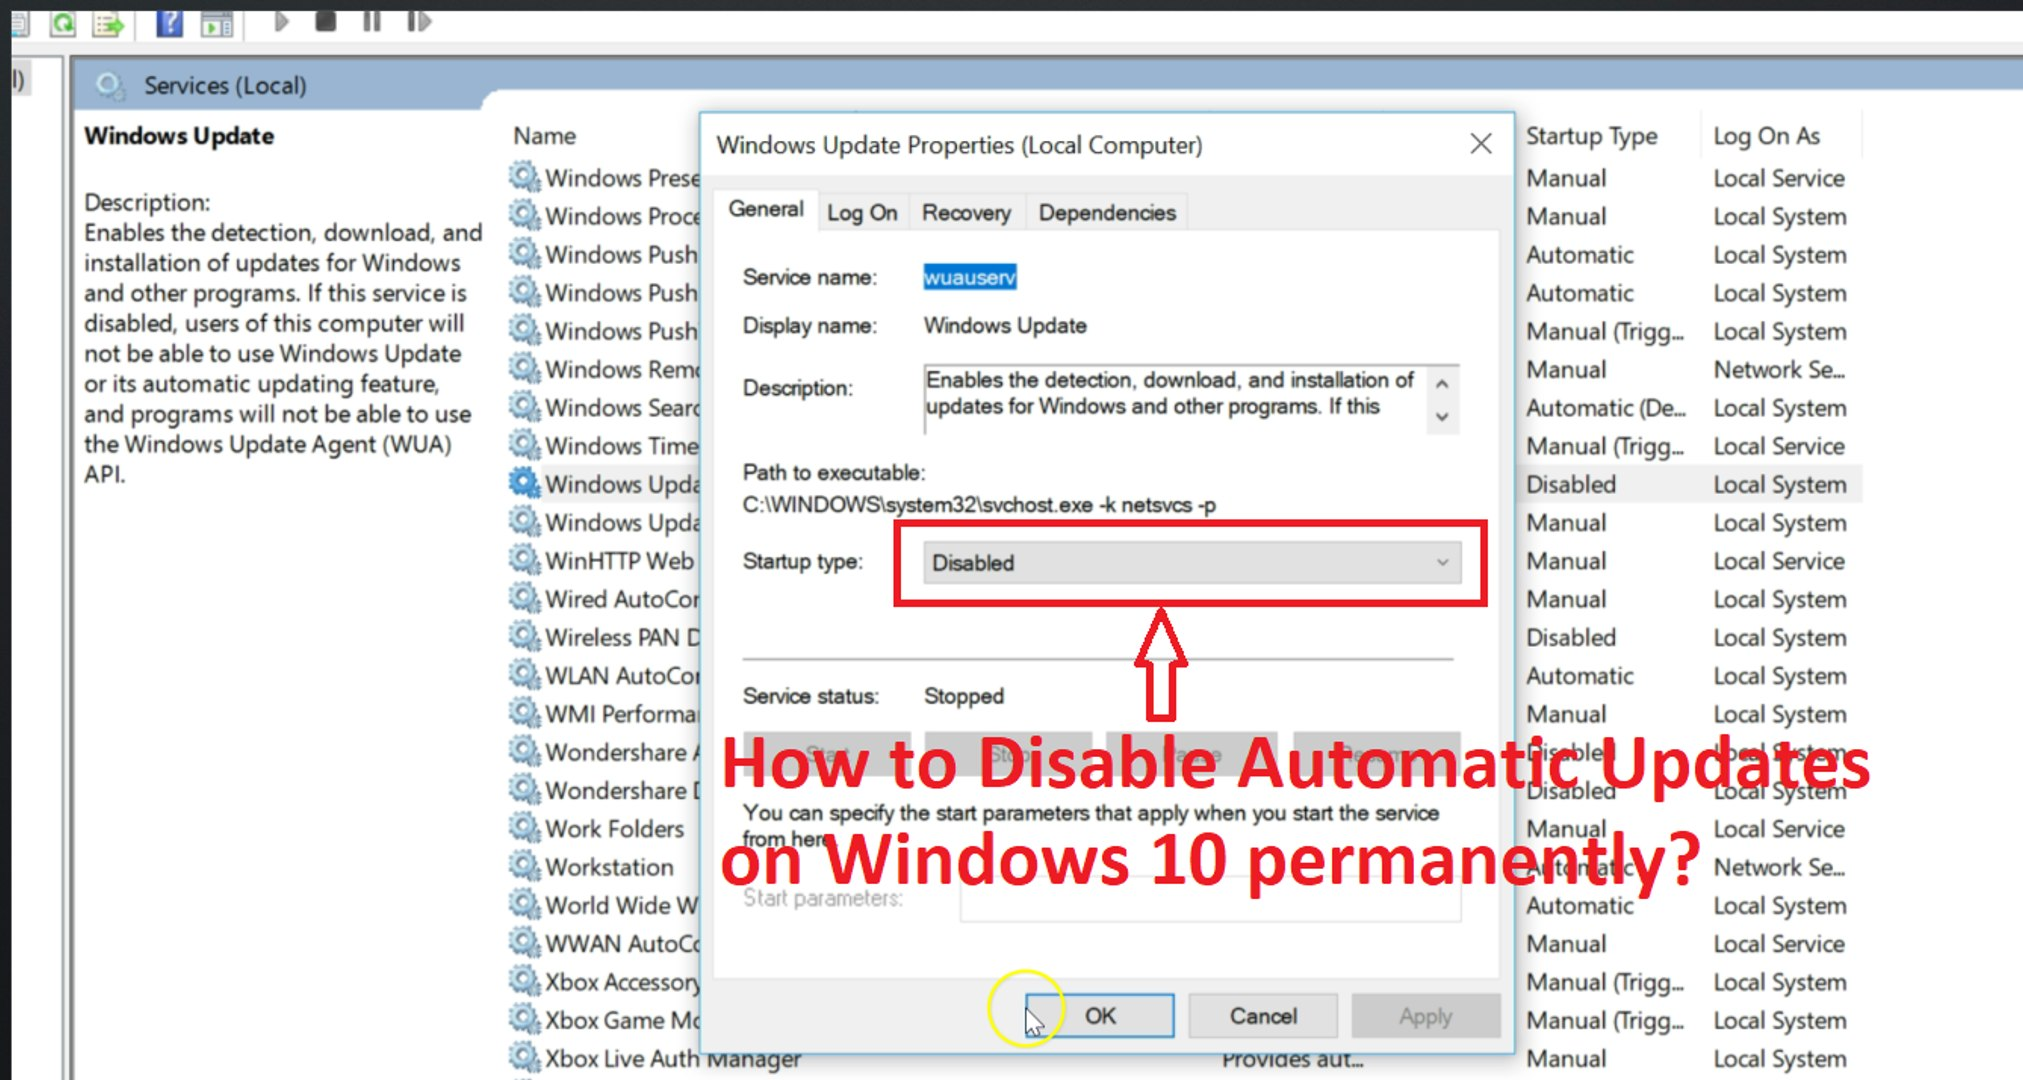 How to Disable Automatic Updates on Windows 10 Permanently?